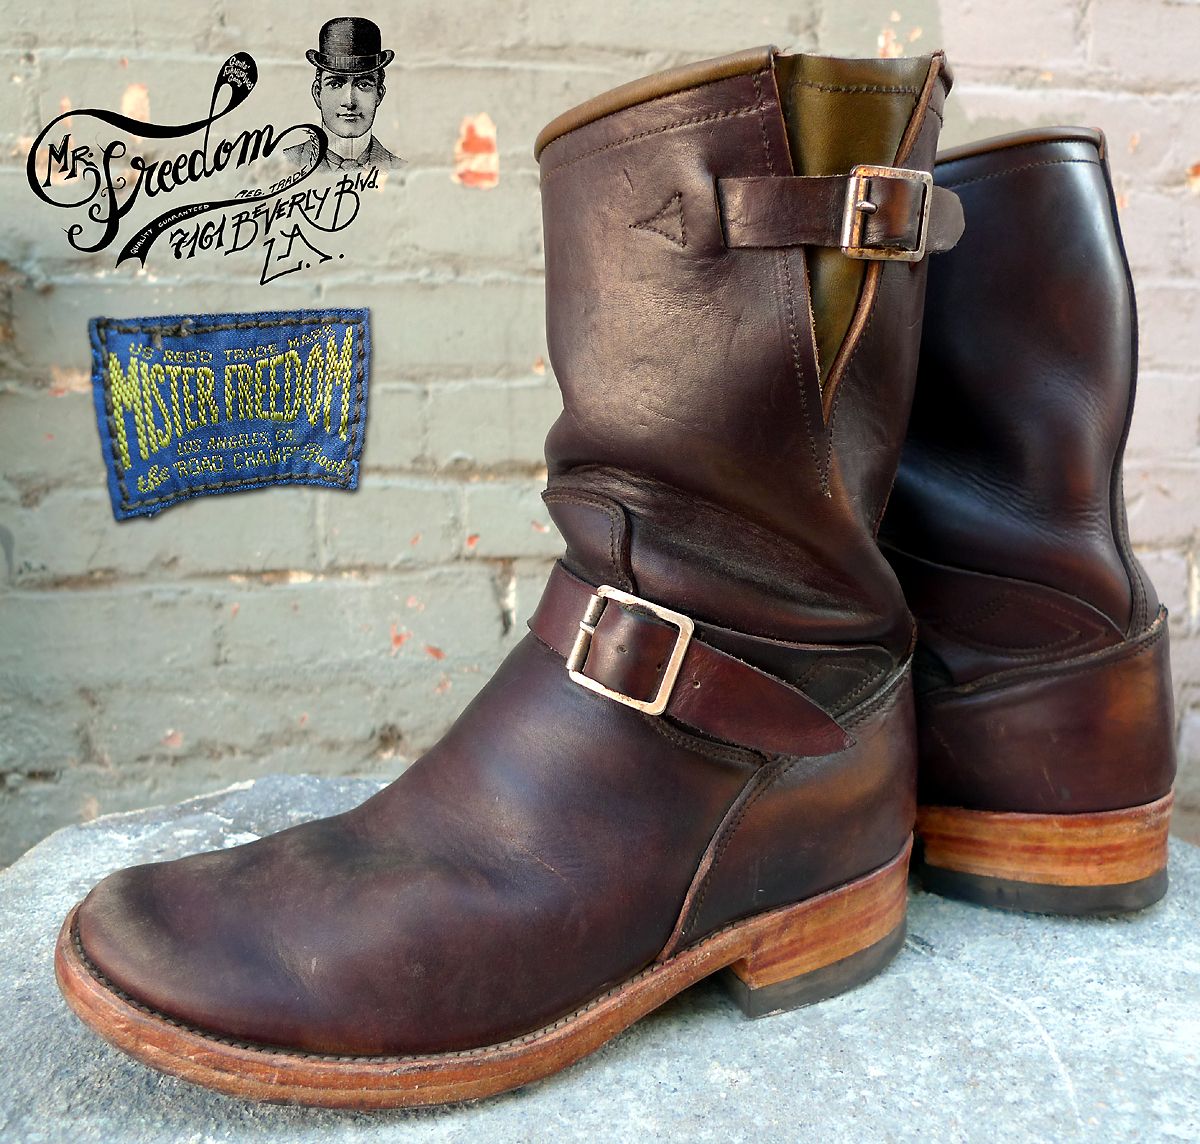 Mister Freedom® ROAD CHAMP boots